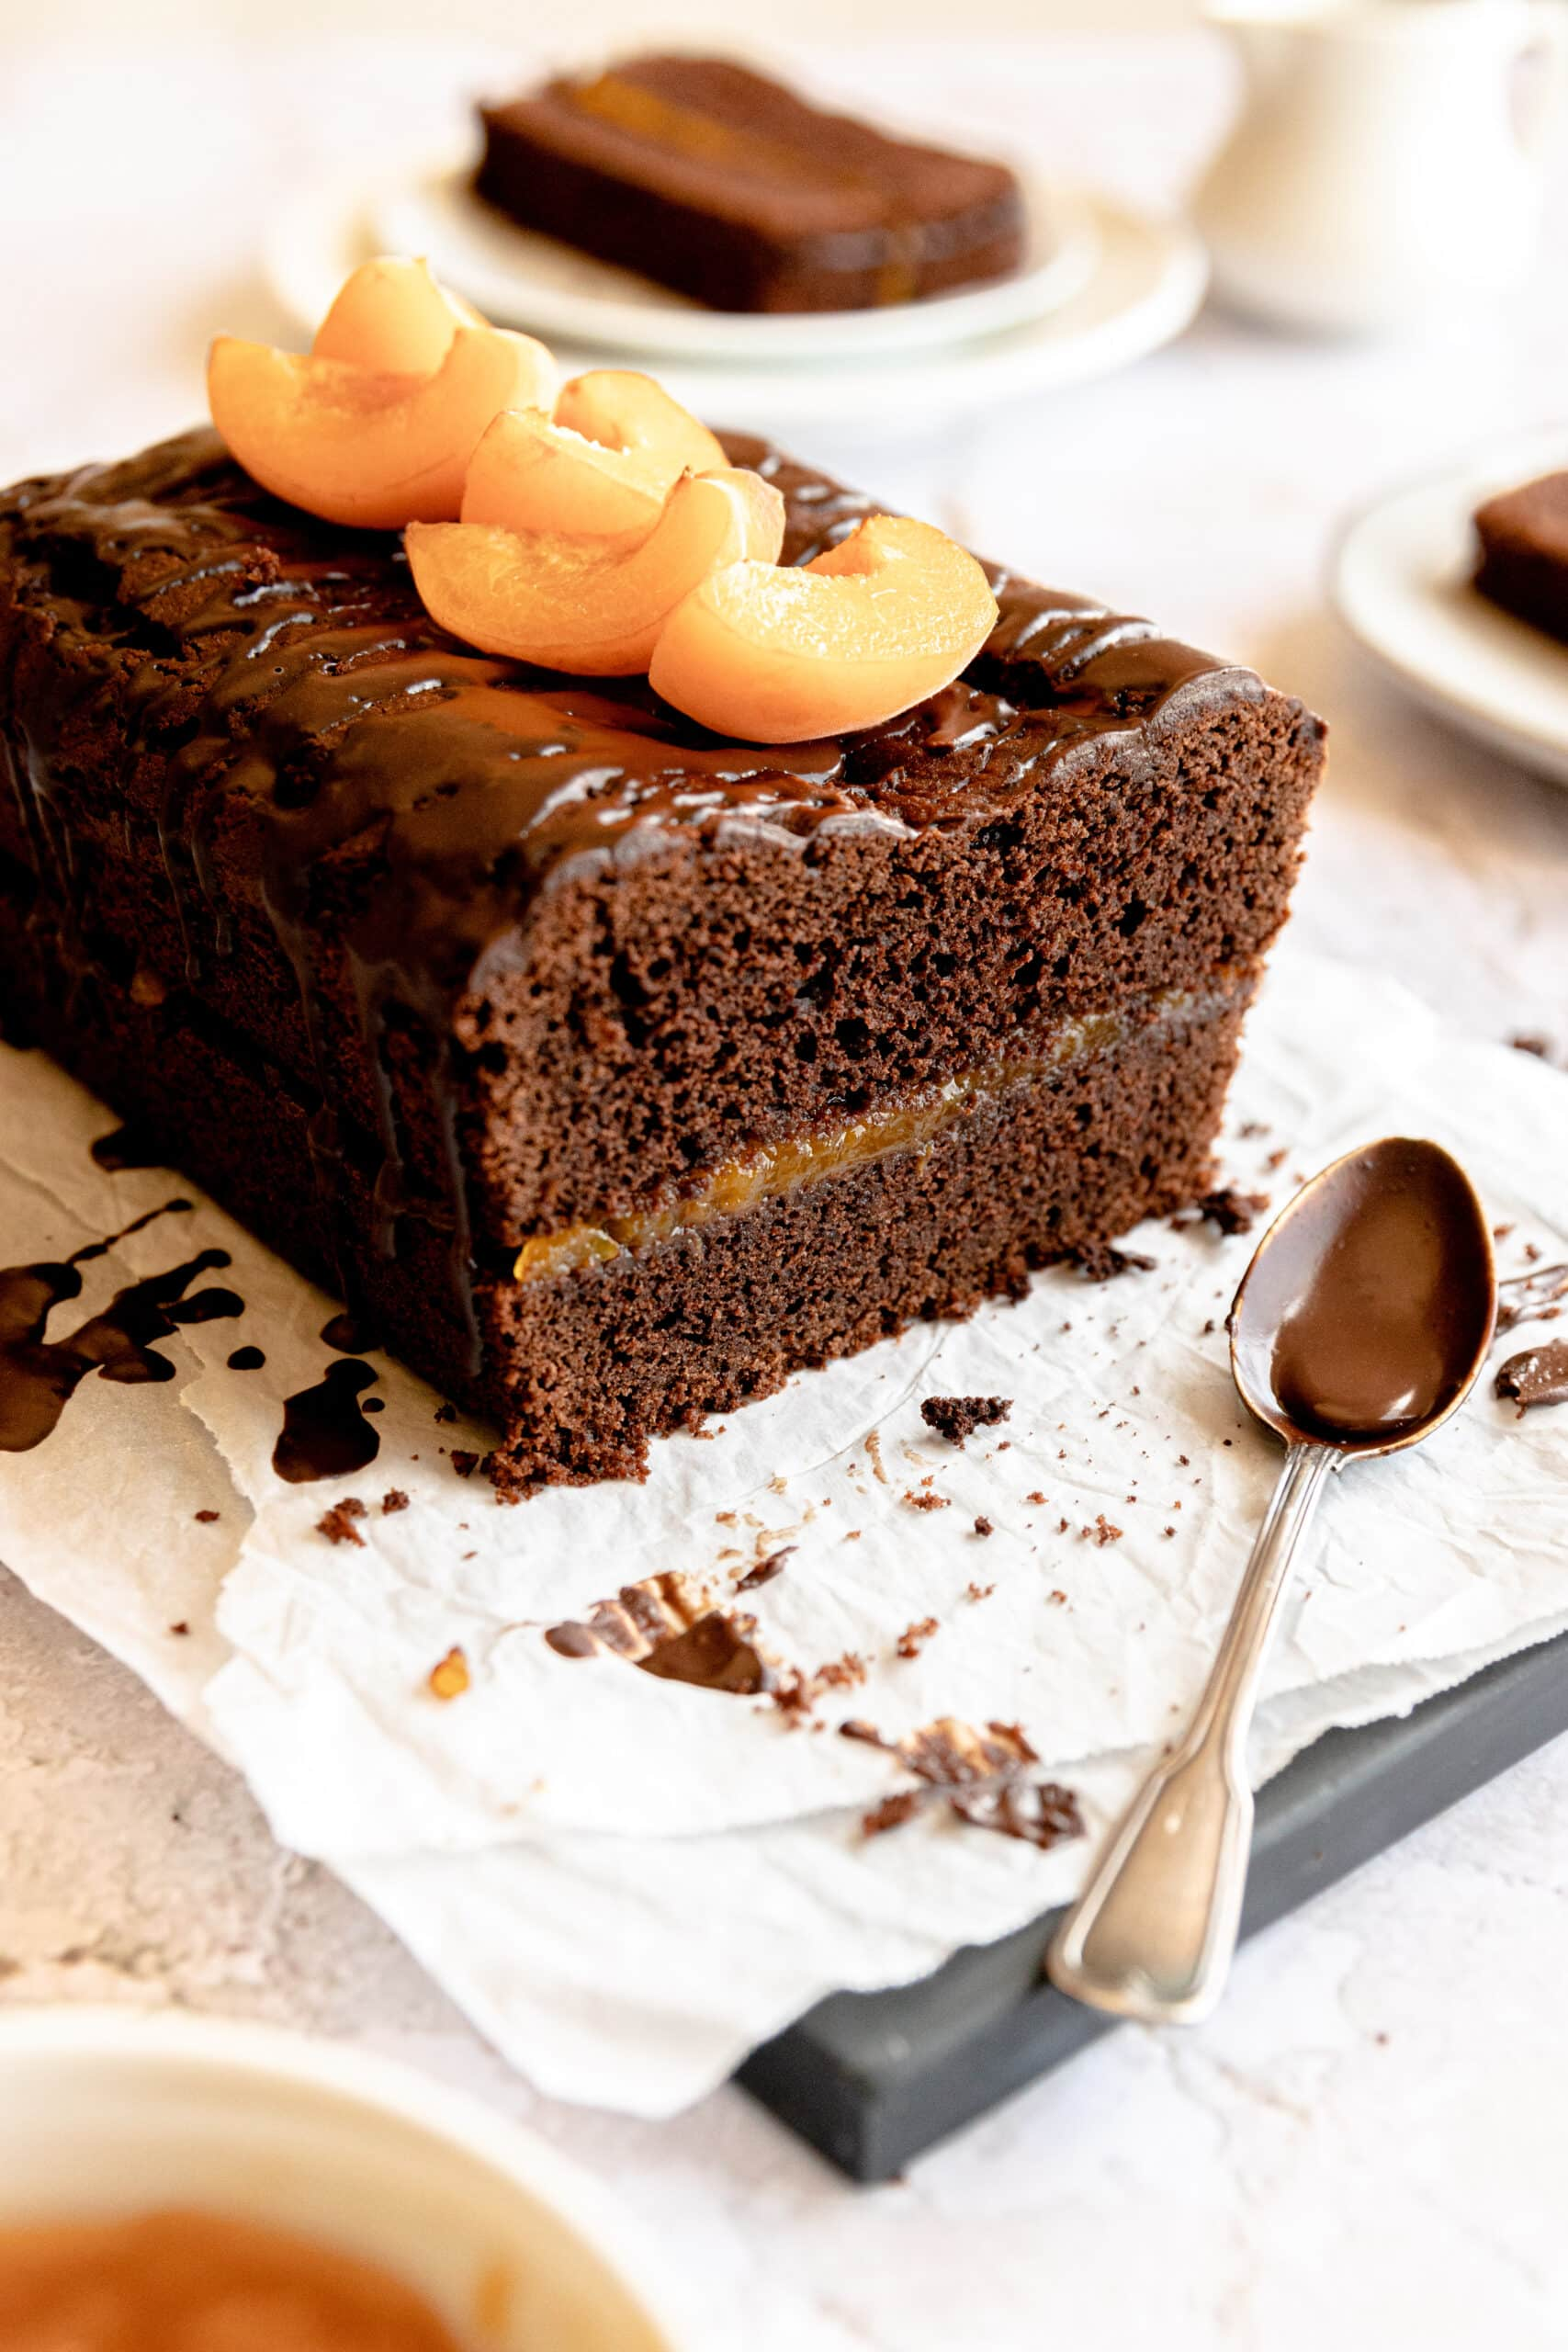 Image of the sachertorte loaf cut into that is split and layered with apricot jam and topped with fresh apricots.